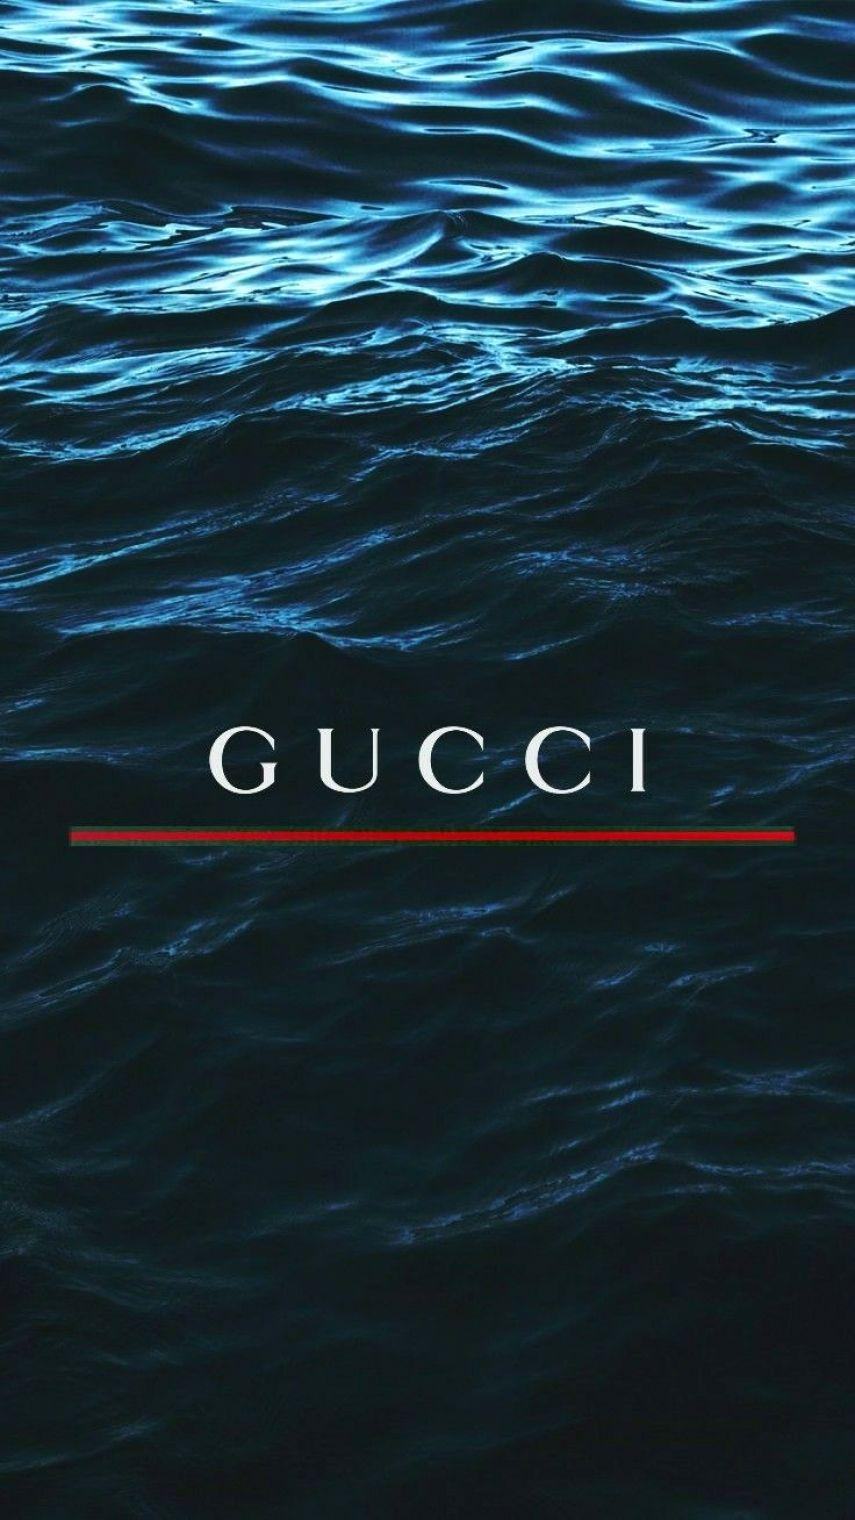 Gucci Wallpapers Tumblr 2 Other Amazing Wallpapers Pin By Bia SchmütZ